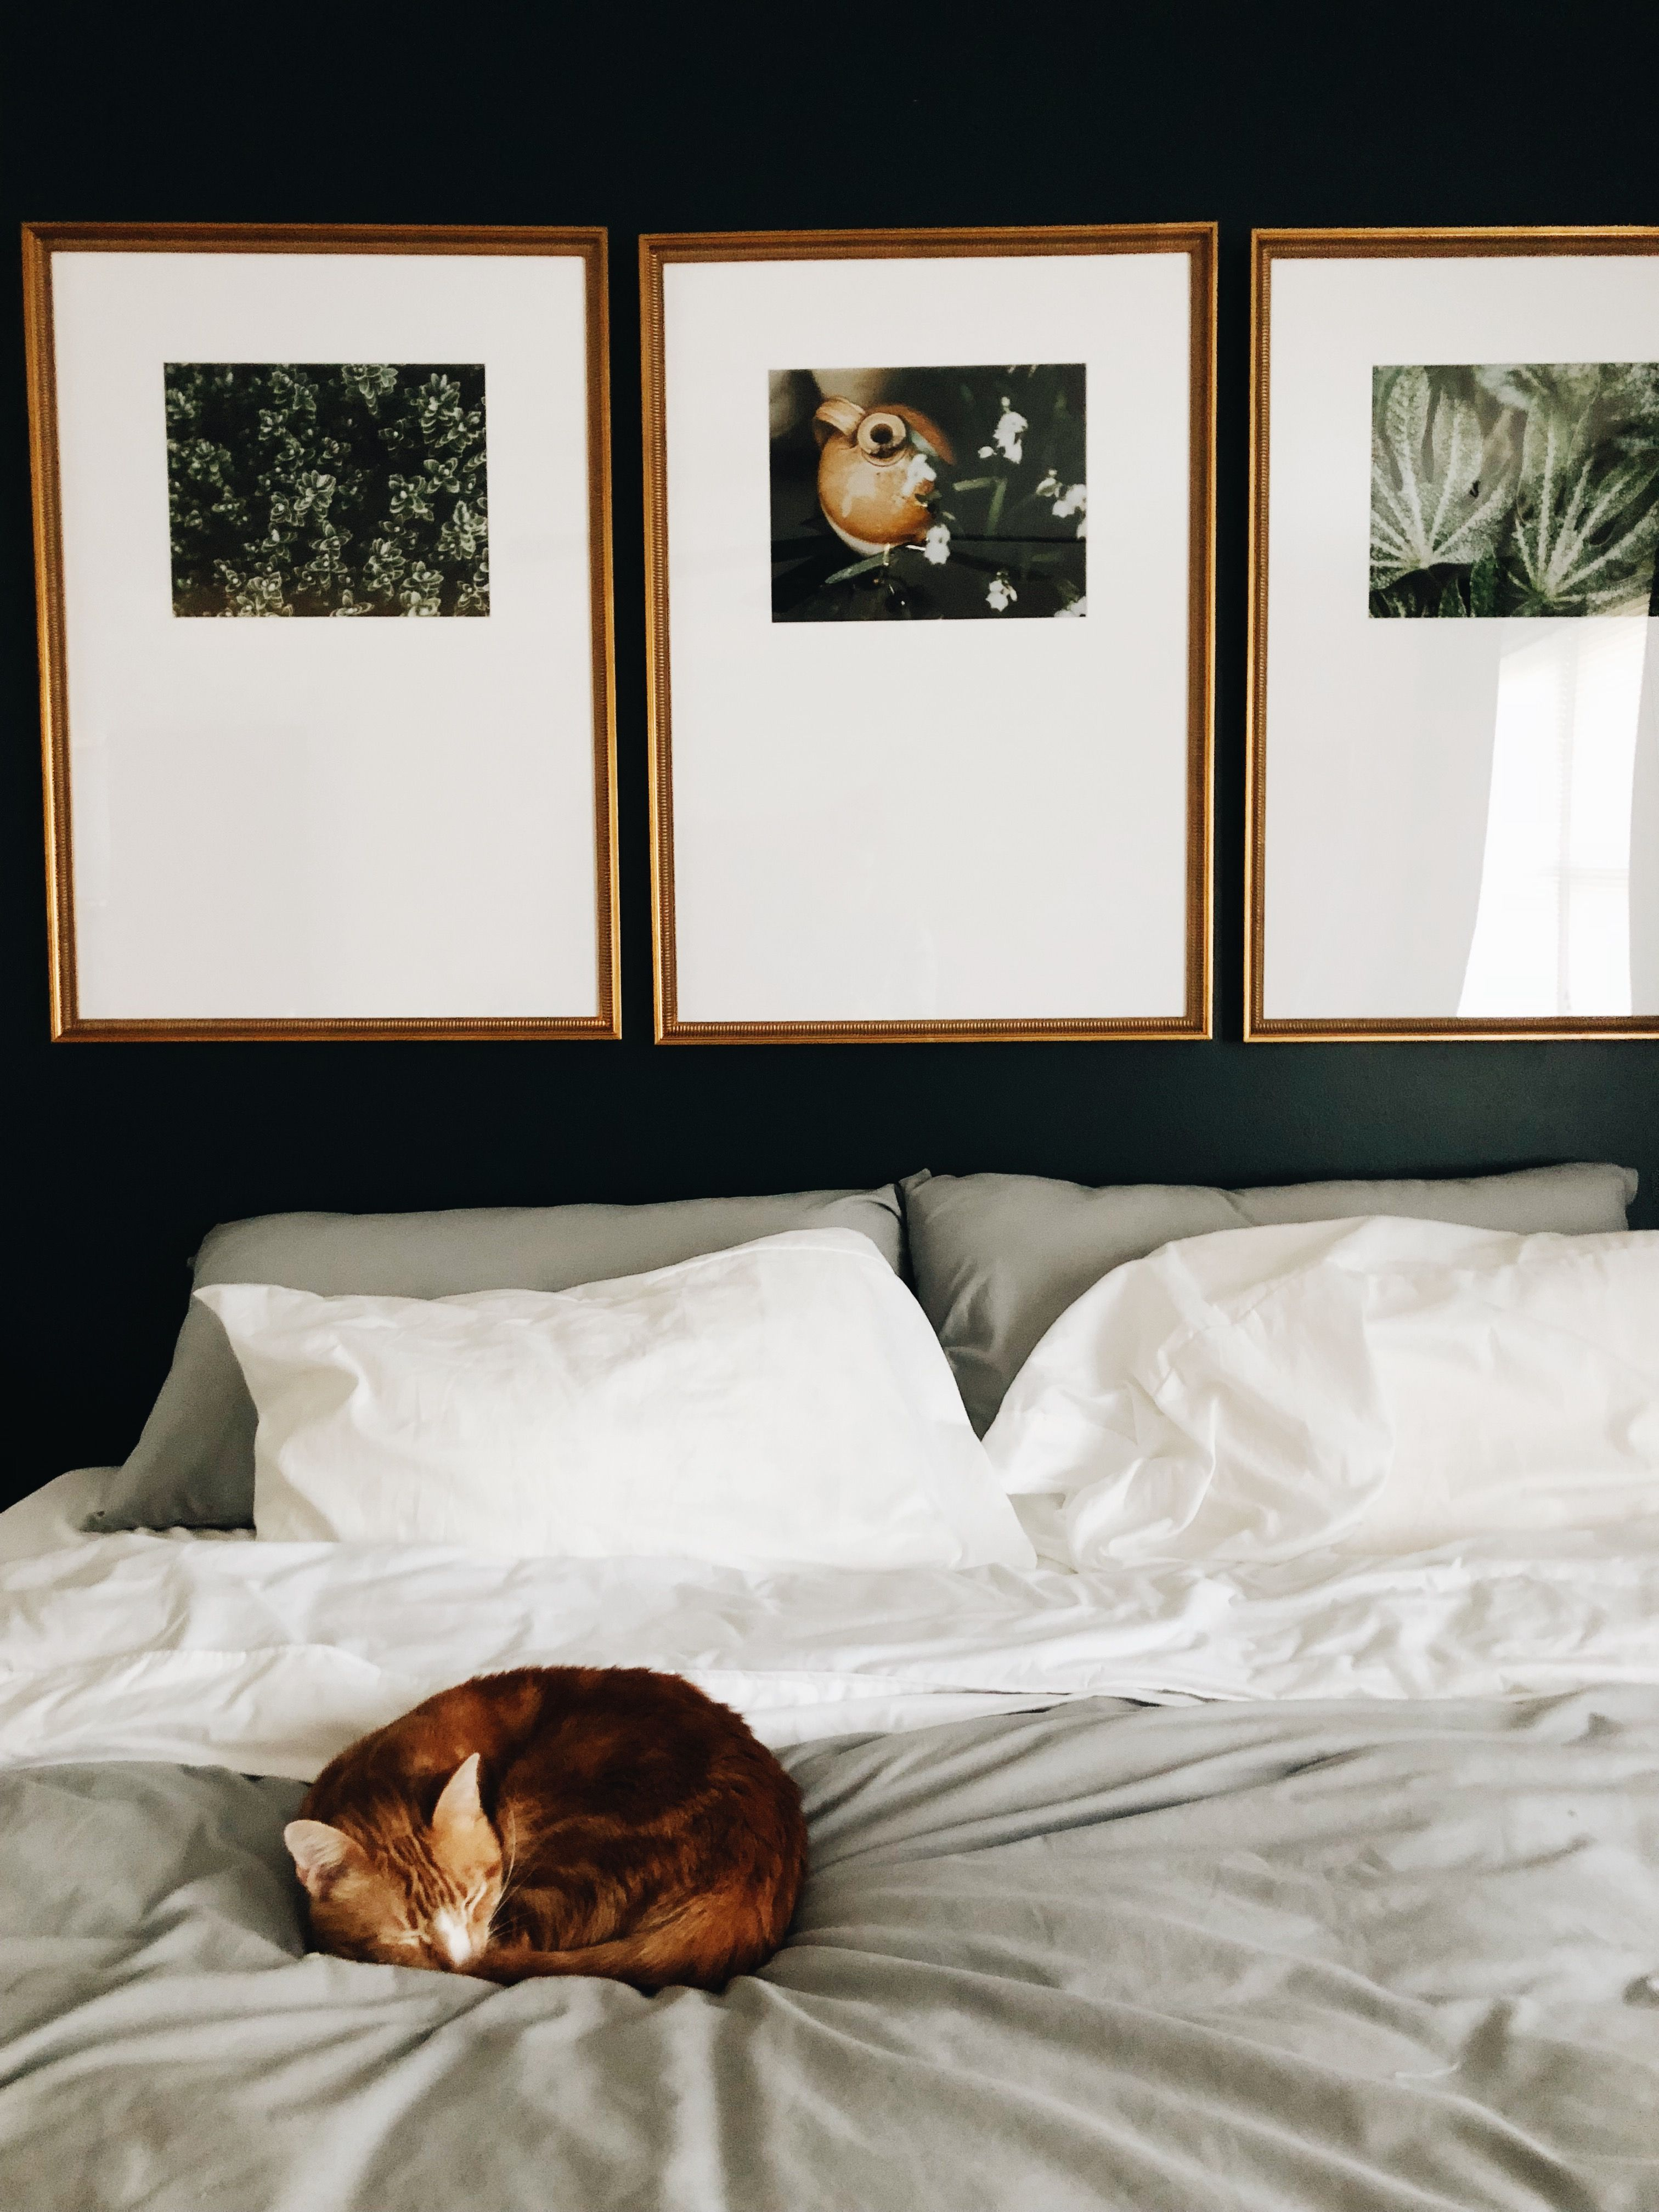 Gallery wall inspiration: small framed photos with oversized mate ...